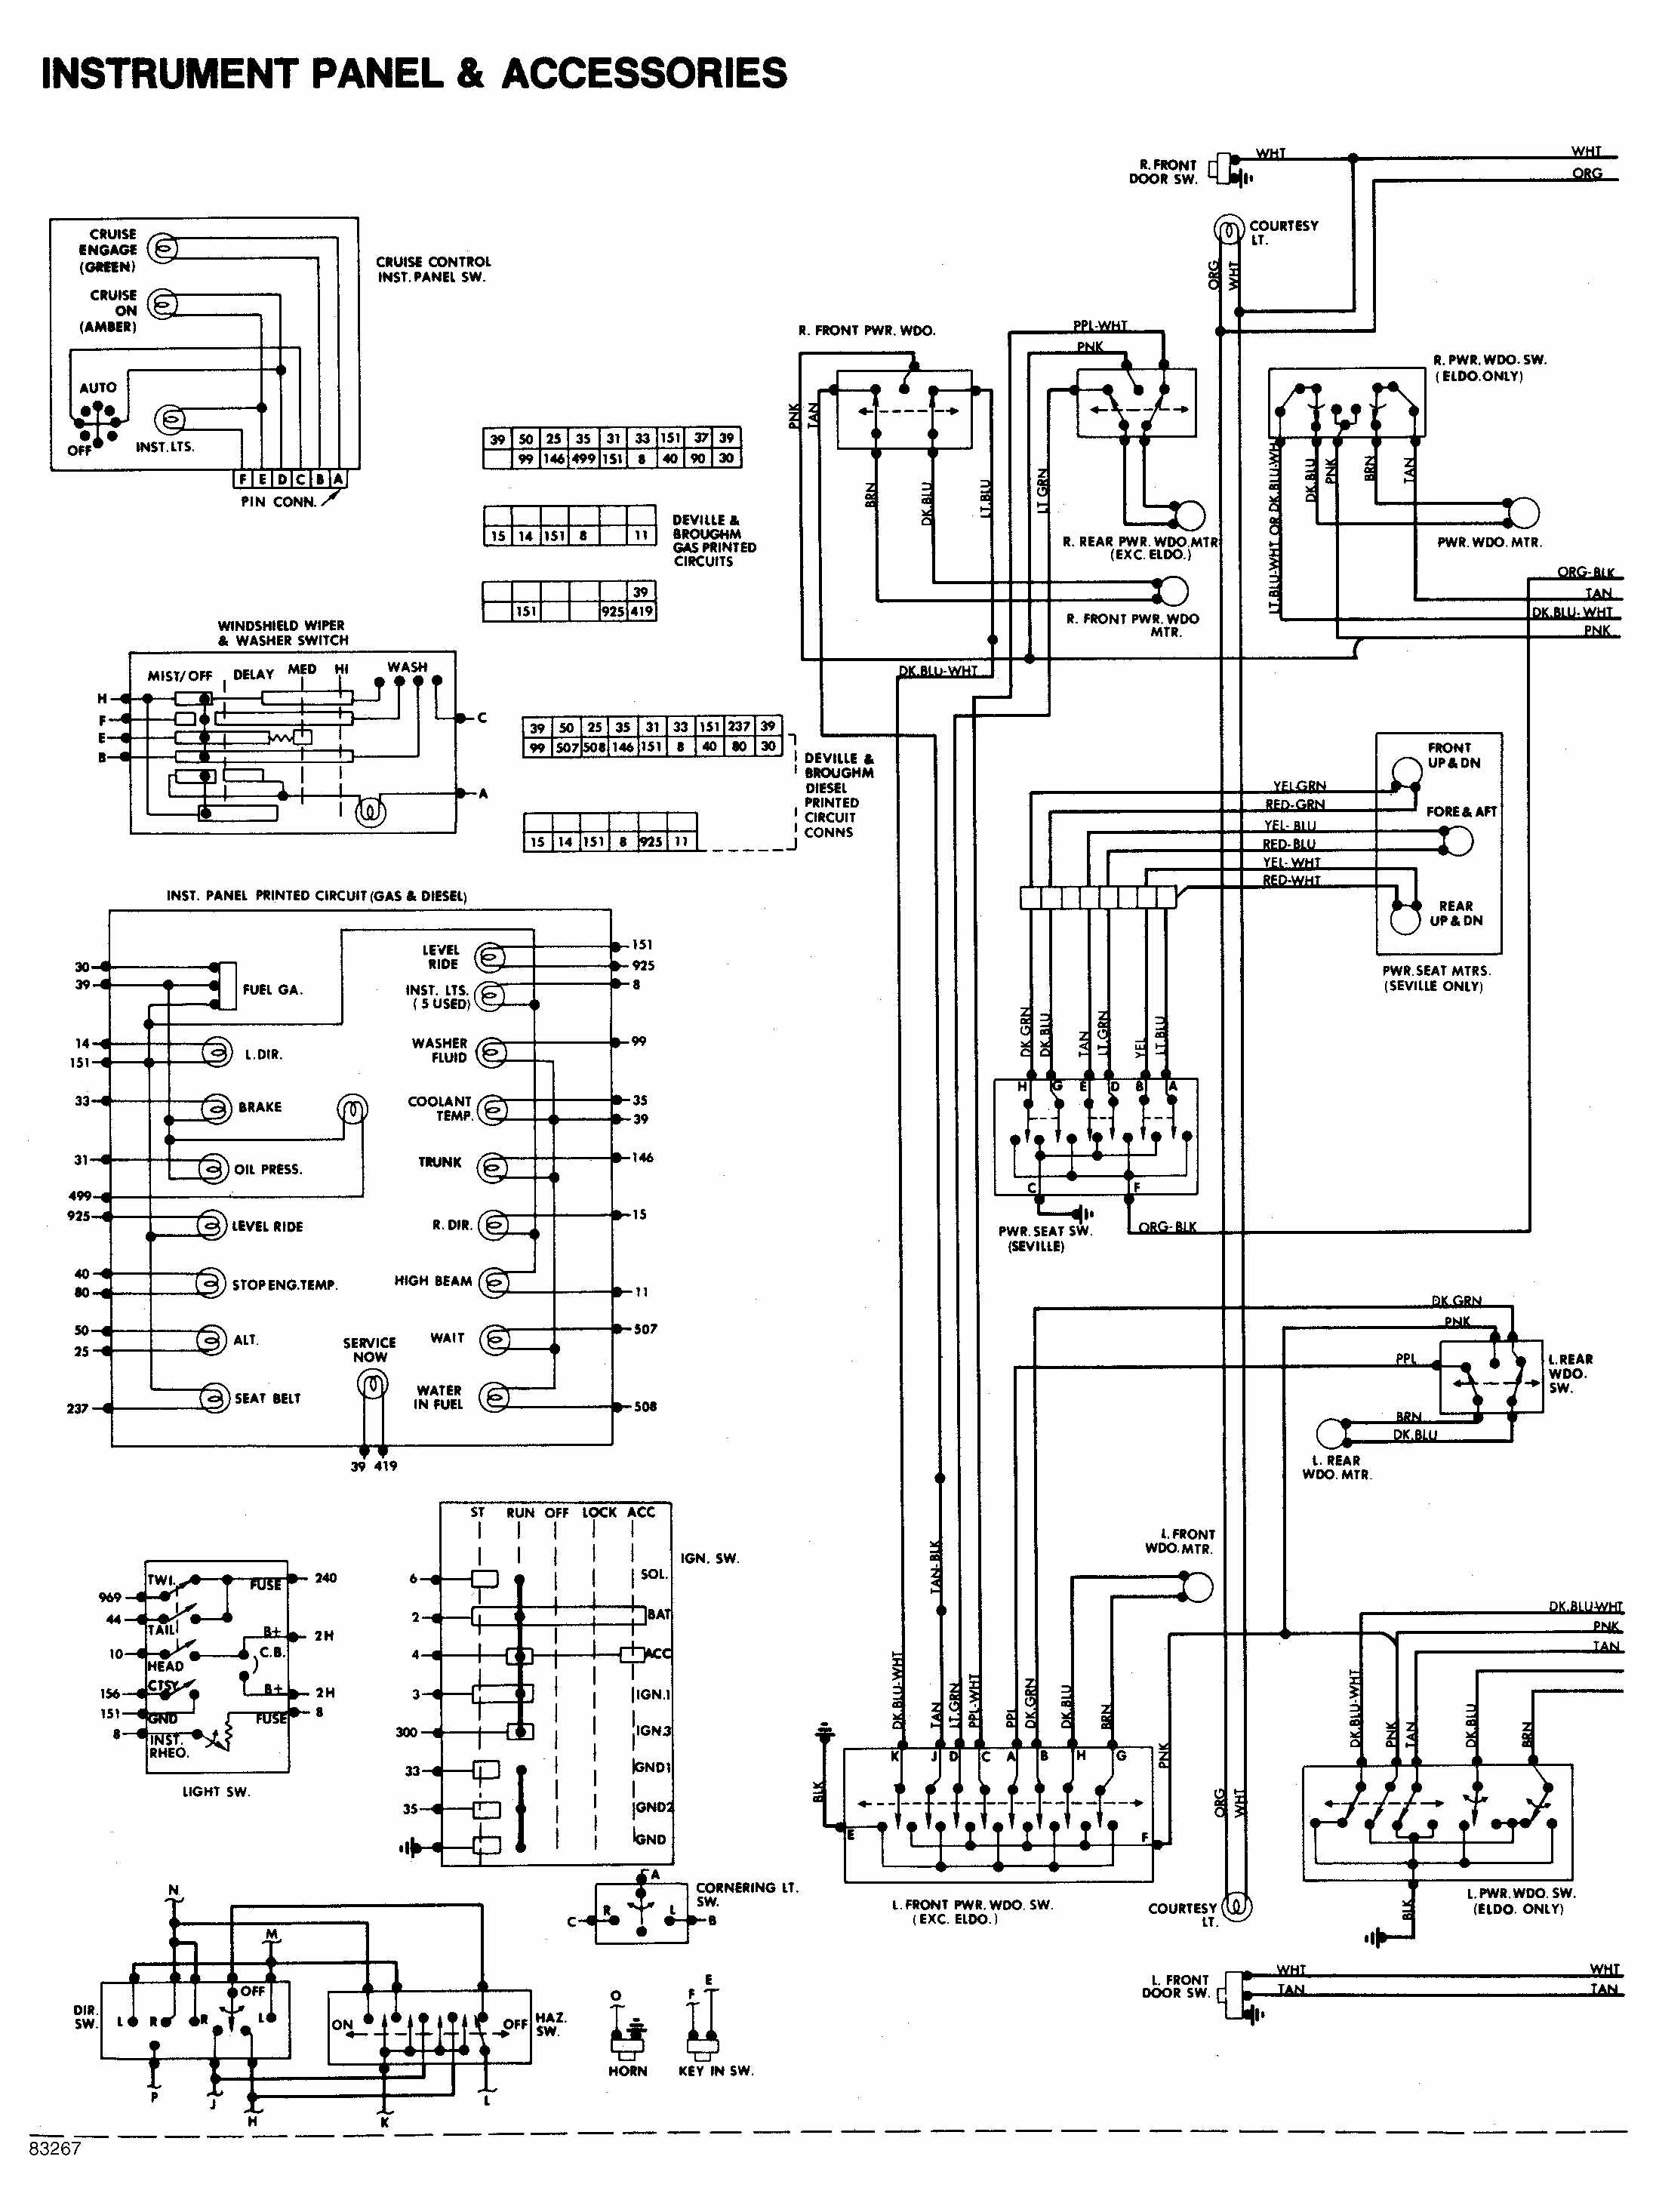 2002 buick regal headlight wiring diagram